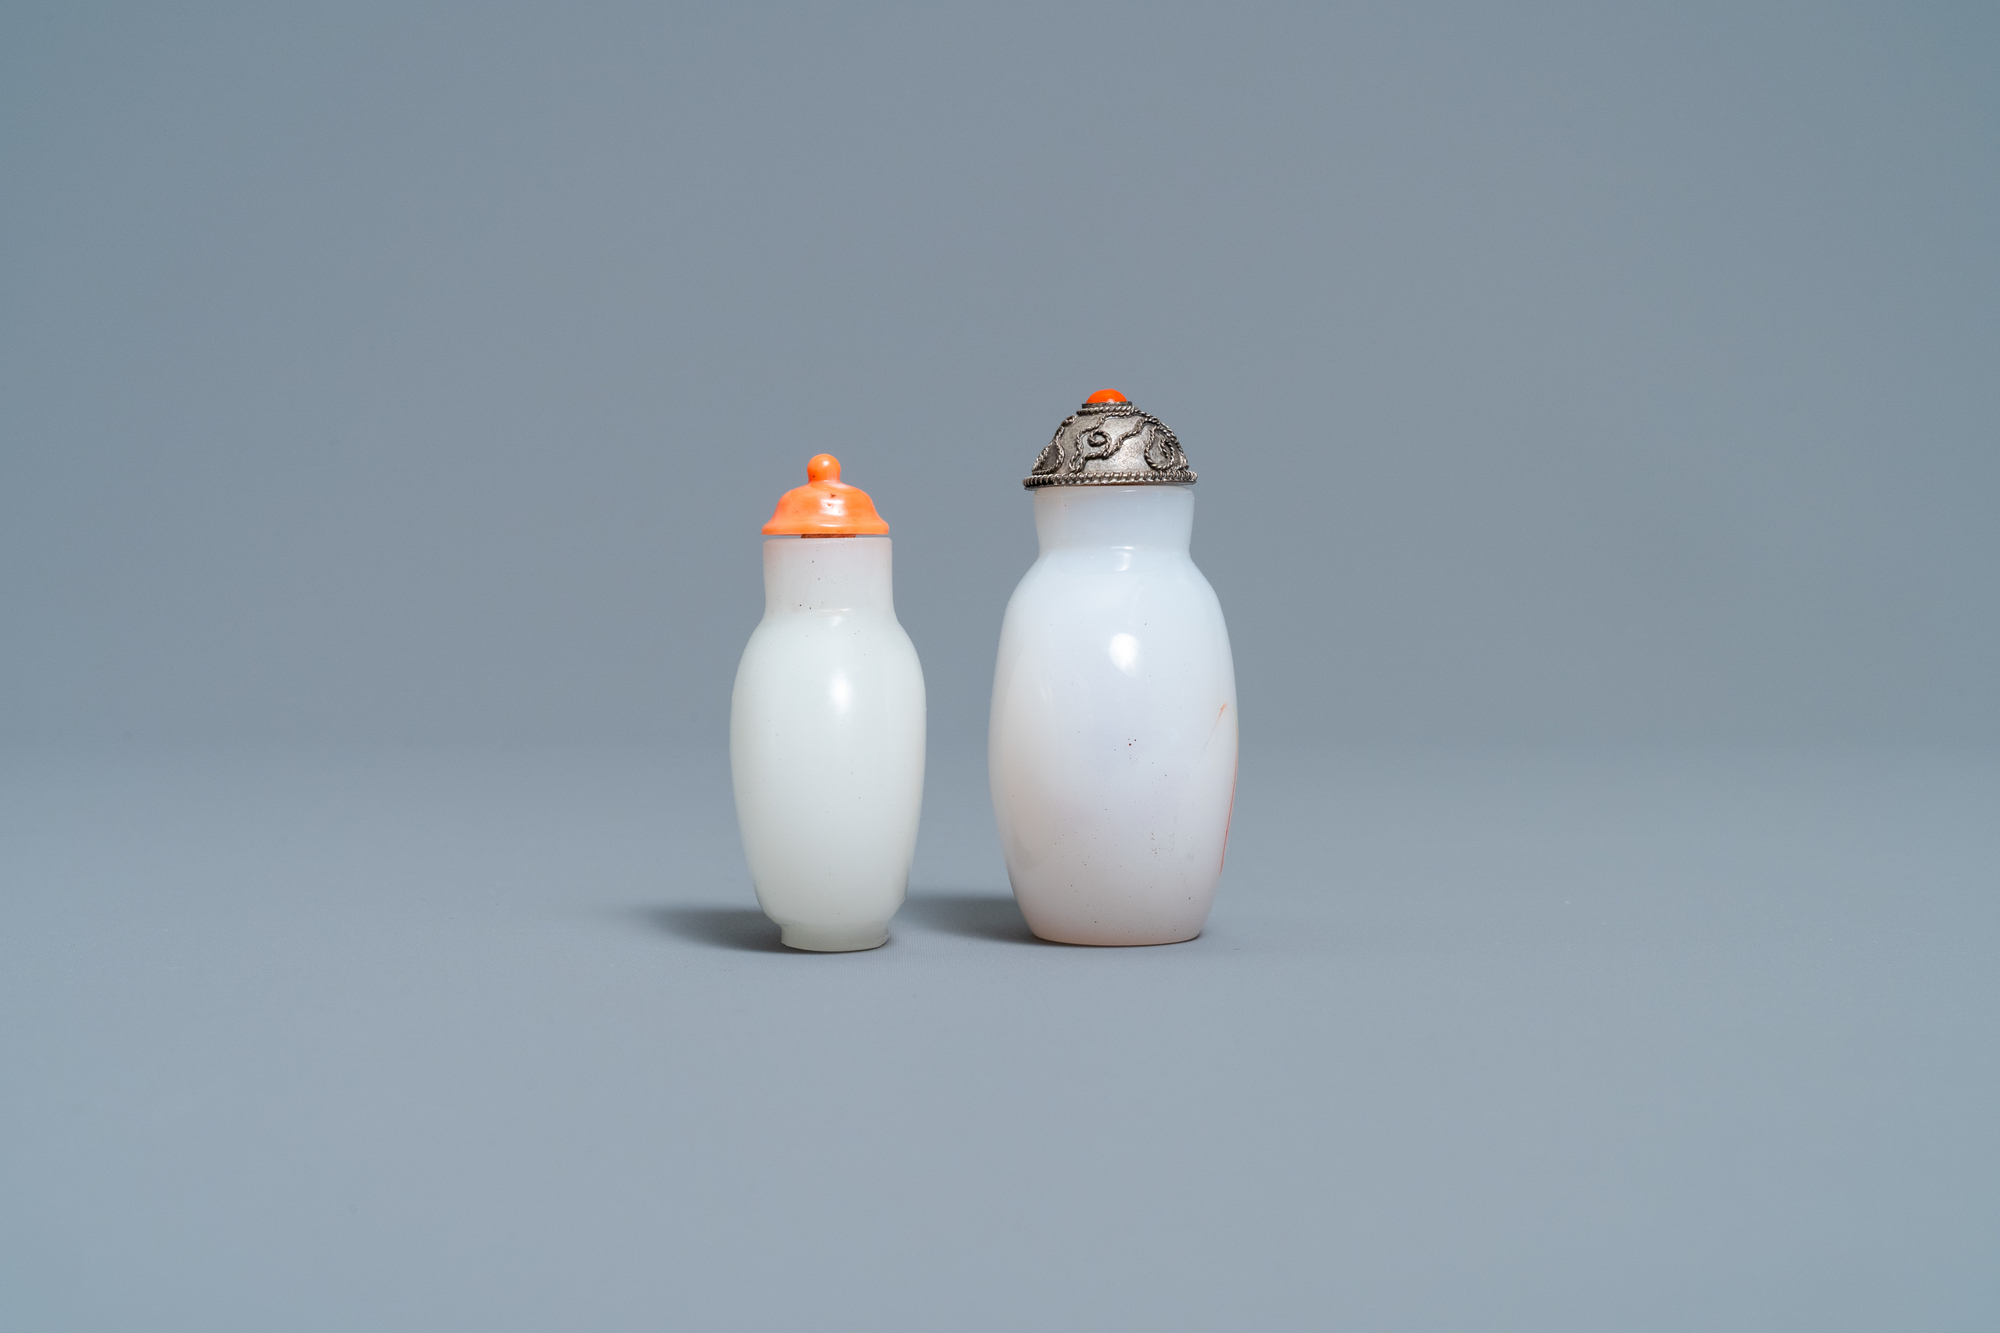 A Chinese white jade coral-topped snuff bottle and one in glass with inclusions, 19th C. - Image 5 of 7